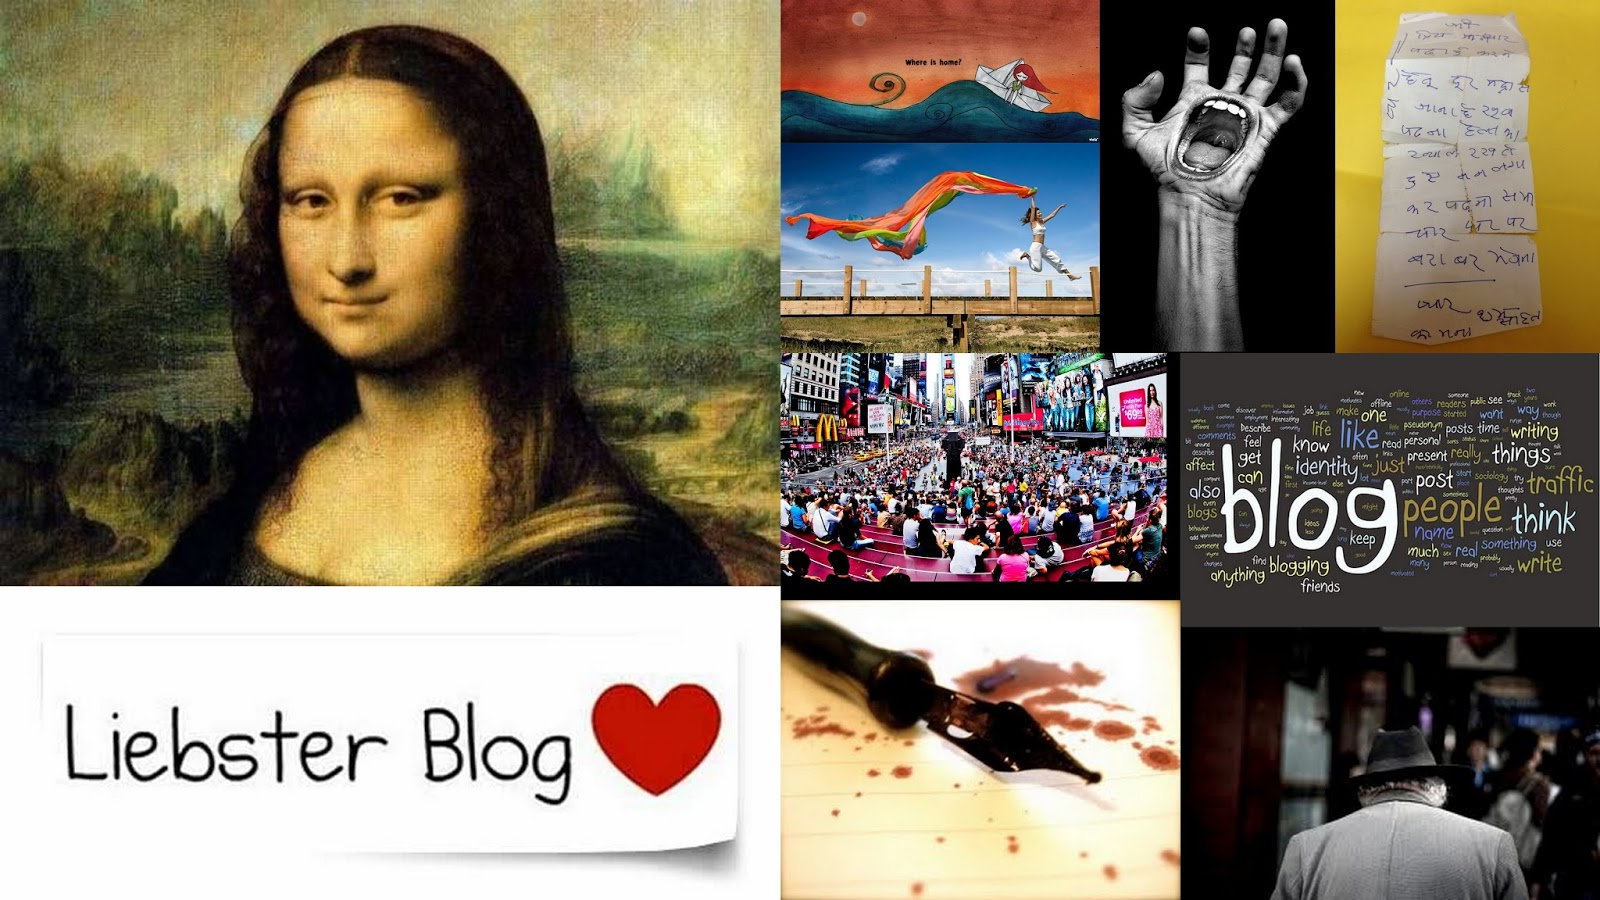 Blog,Blogging,Blogger,Writing,Mona Lisa, Liebster, Indiblogger, Blogadda, SEO